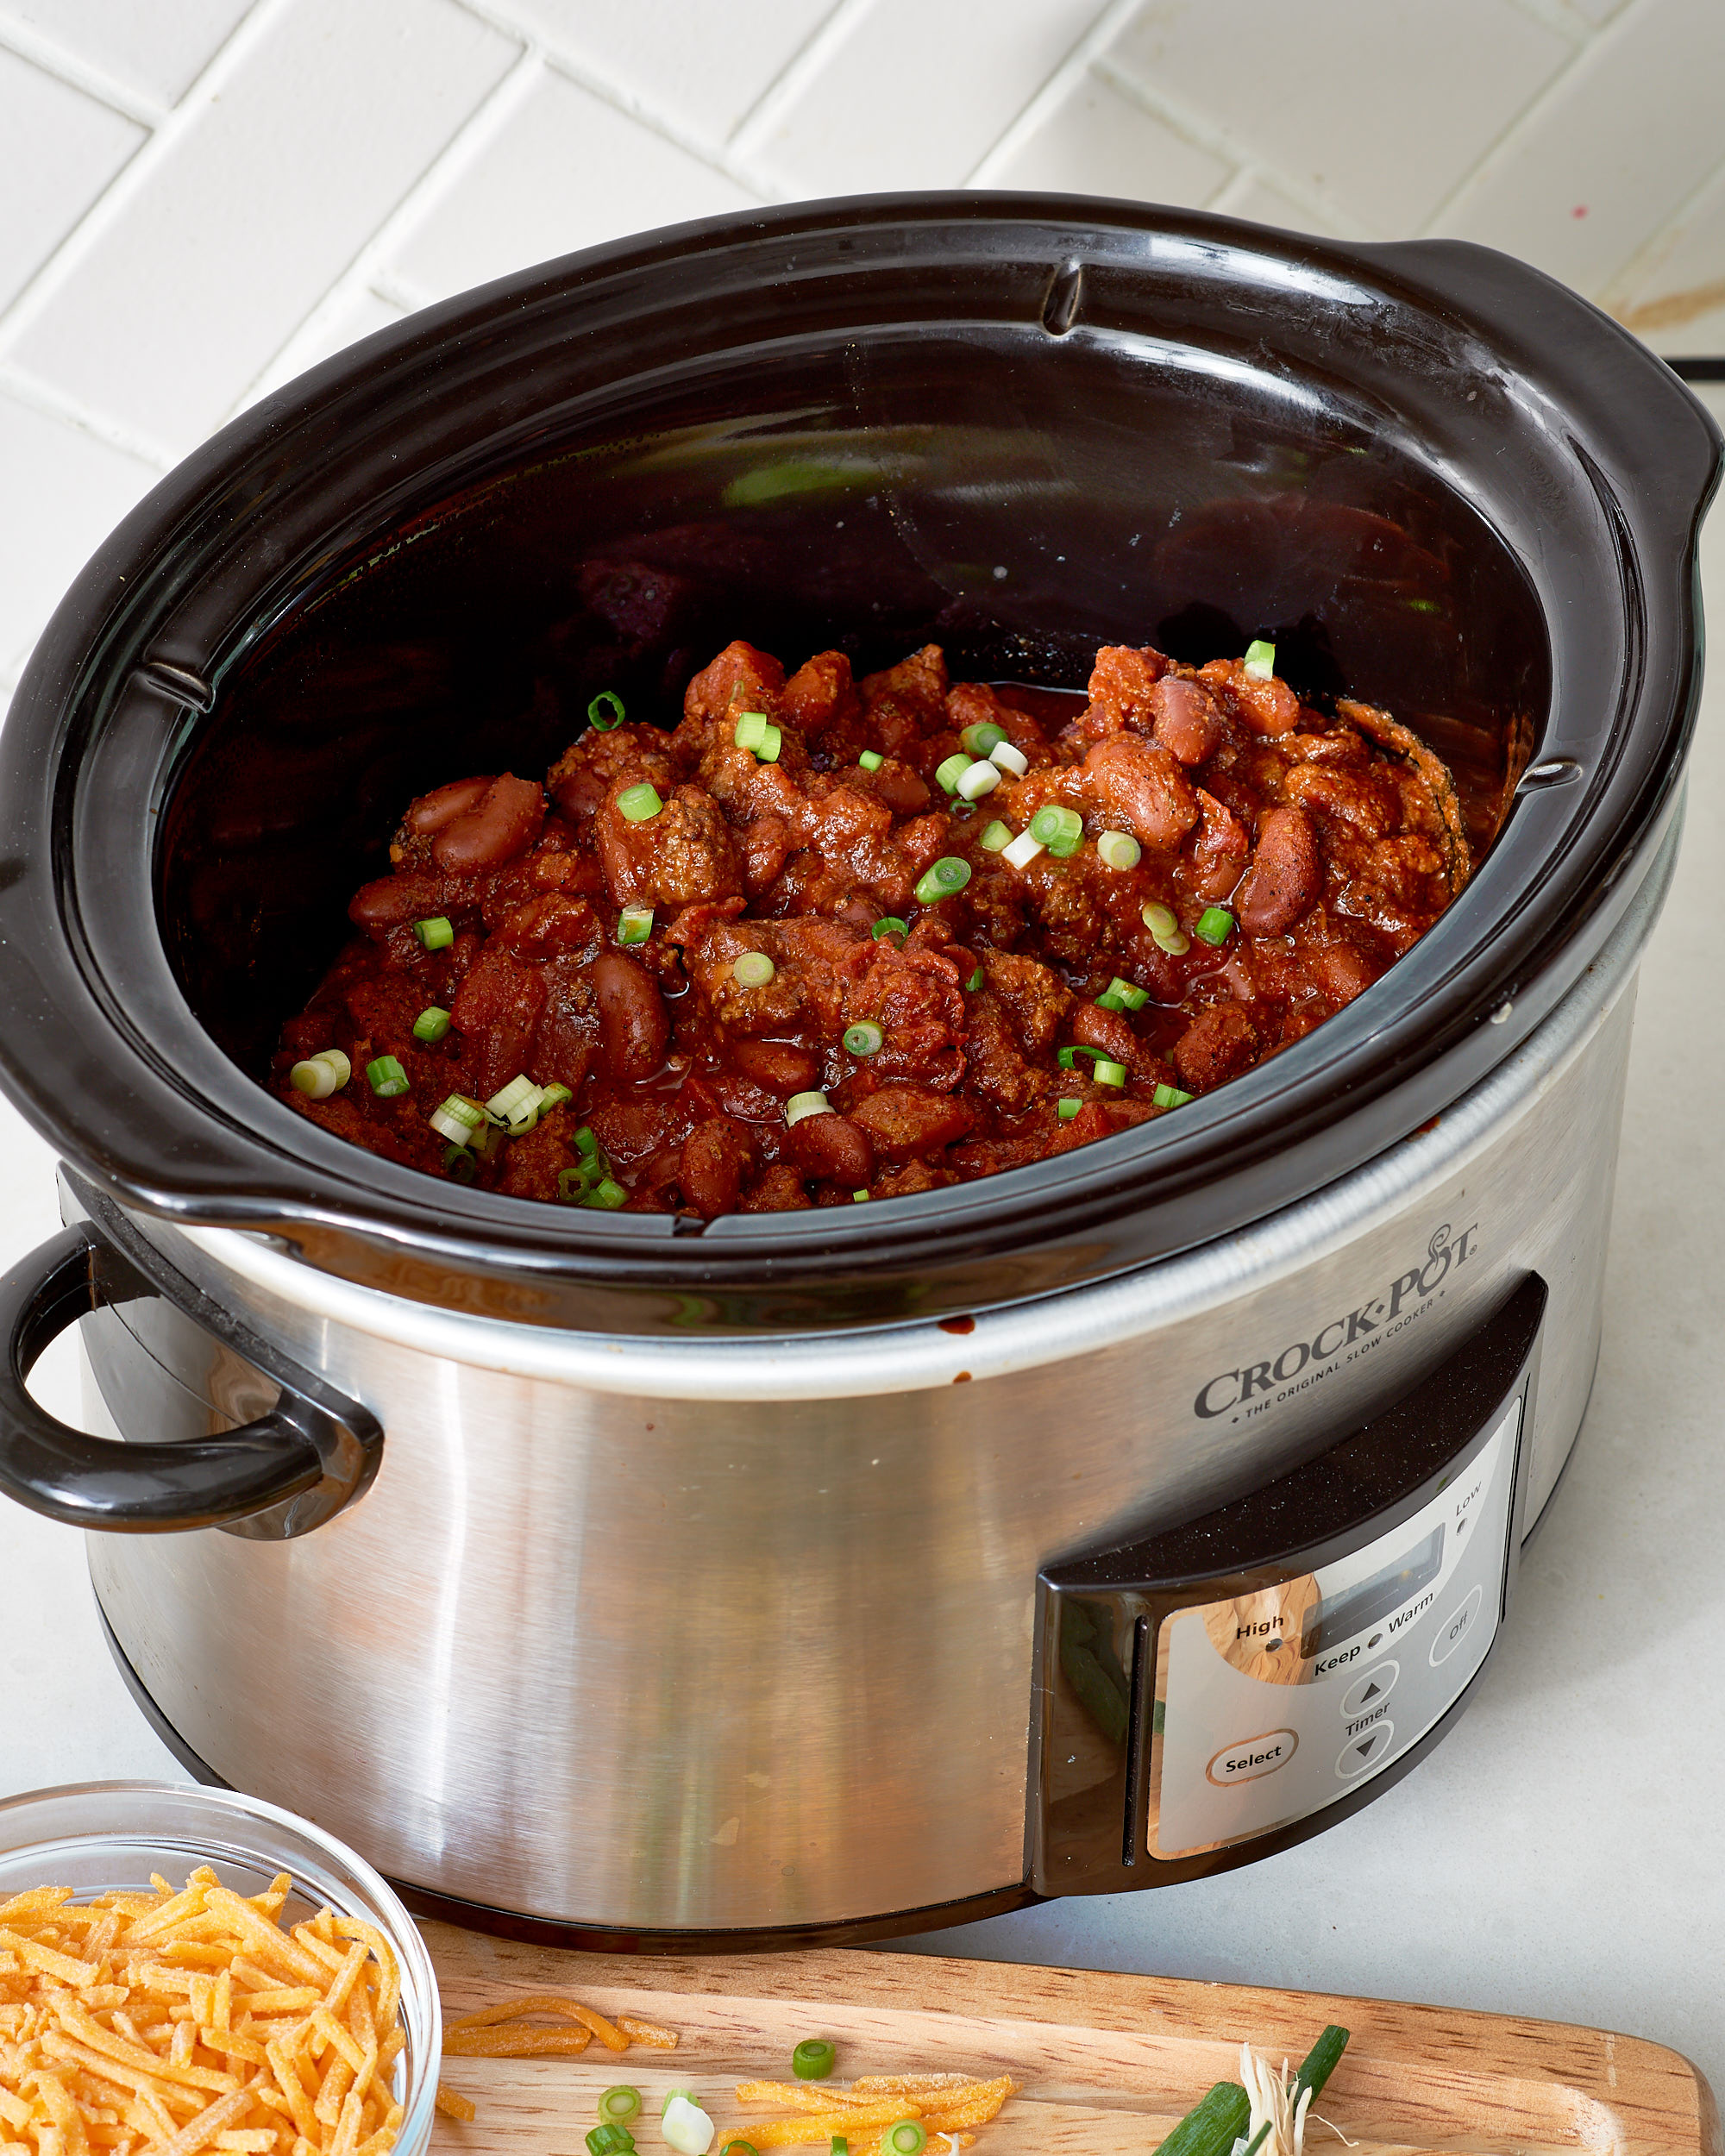 How To Make Slow Cooker Beef Chili The Simplest Easiest Method Kitchn